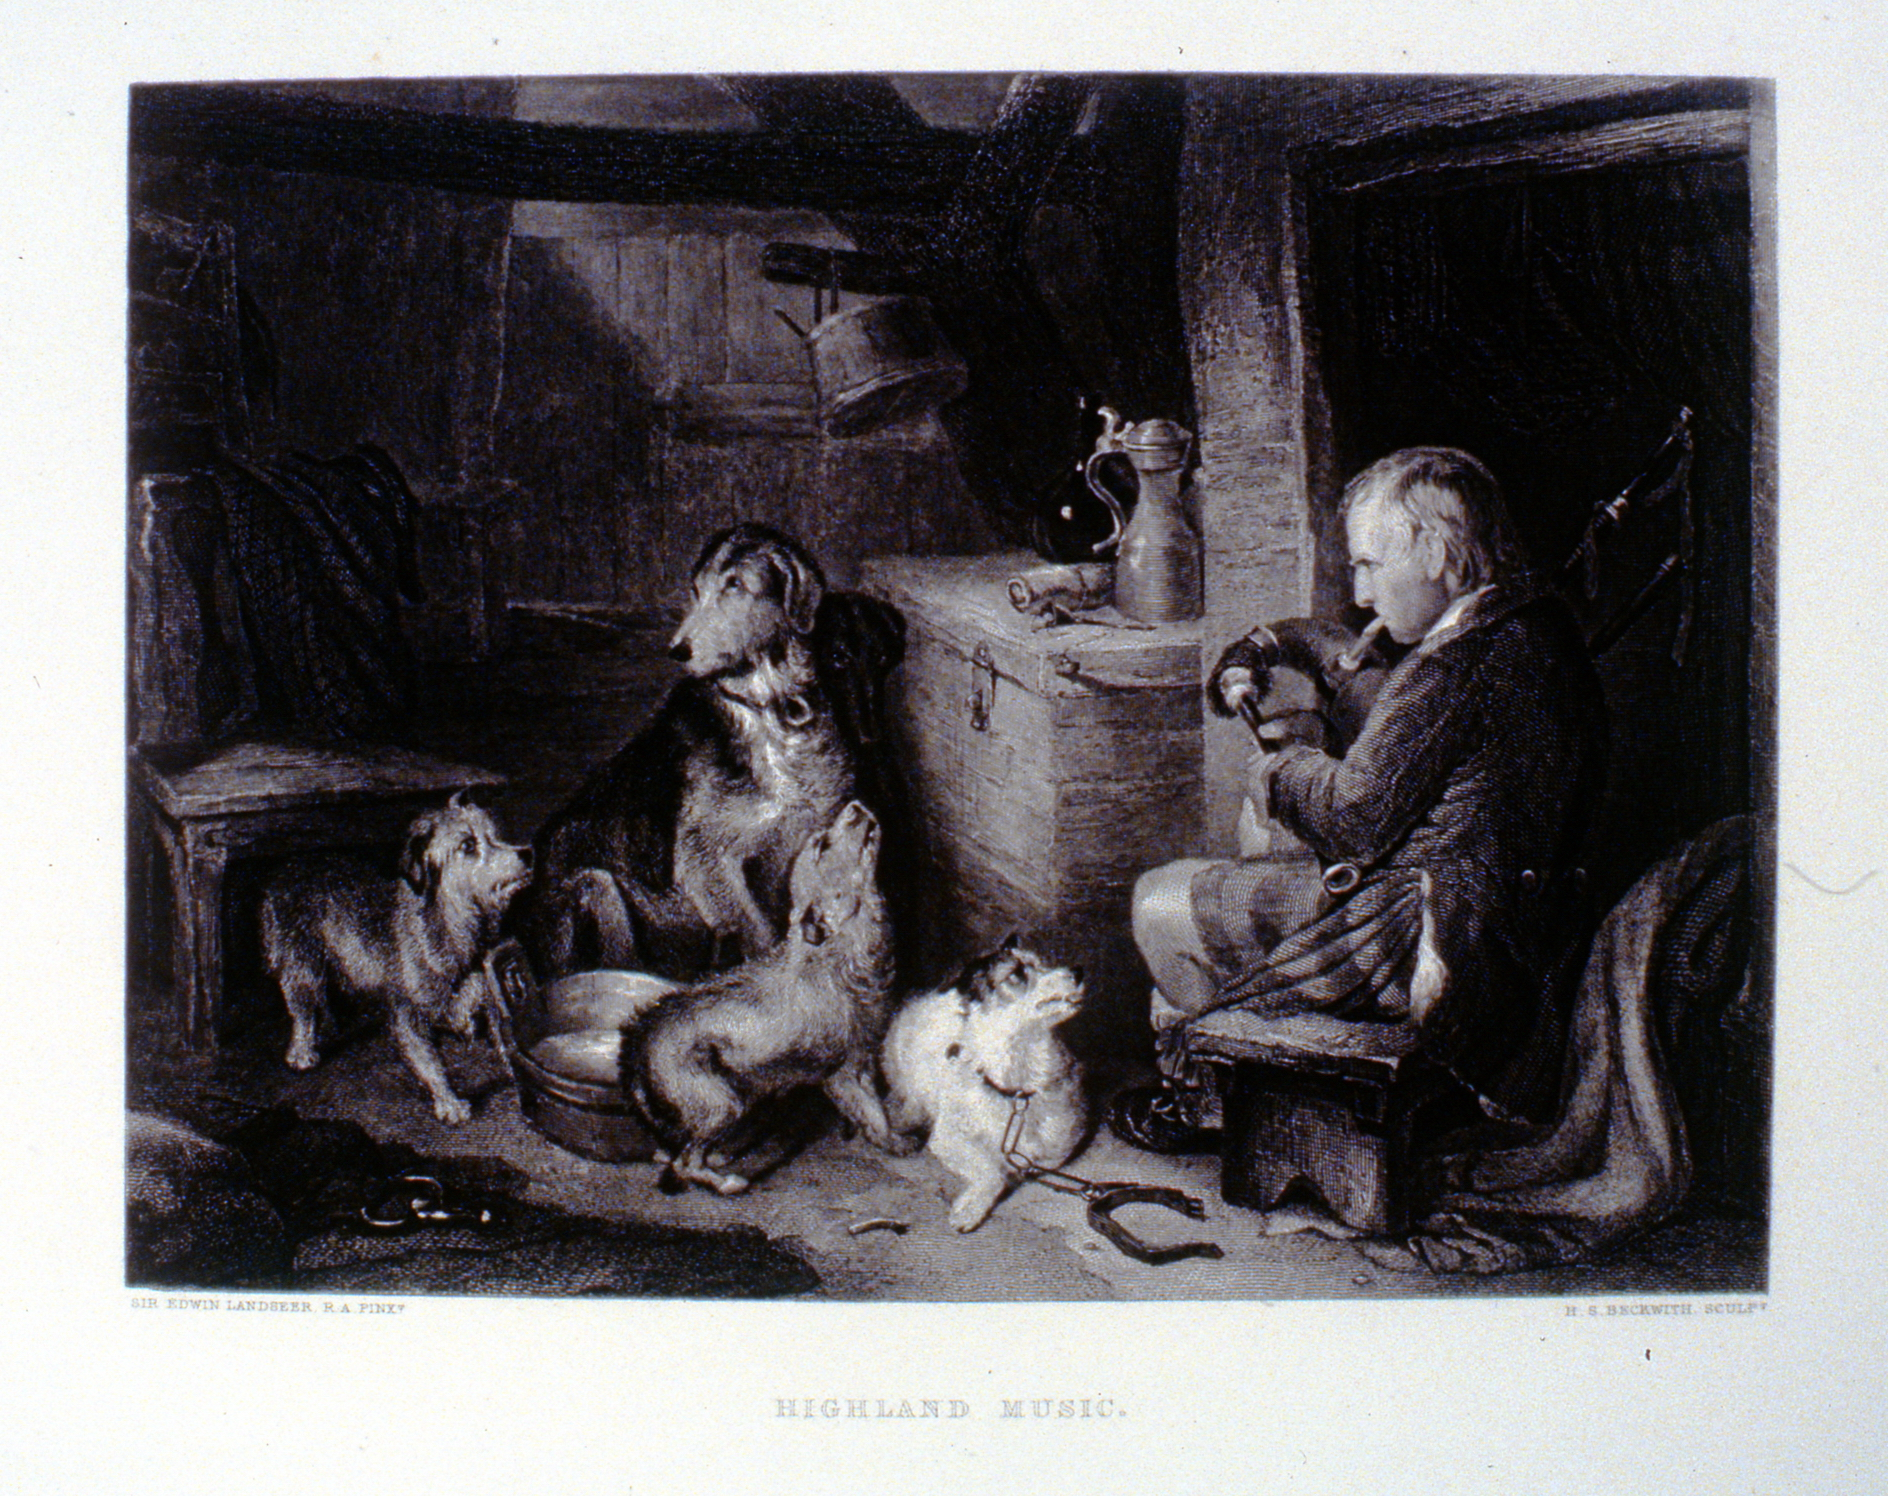 Highland Music , c. late 19th Century, H.S. Beckwith, steel engraving, 18.5 cm x 25.1 cm, 1996.08.31, gift of Yvonne Adams